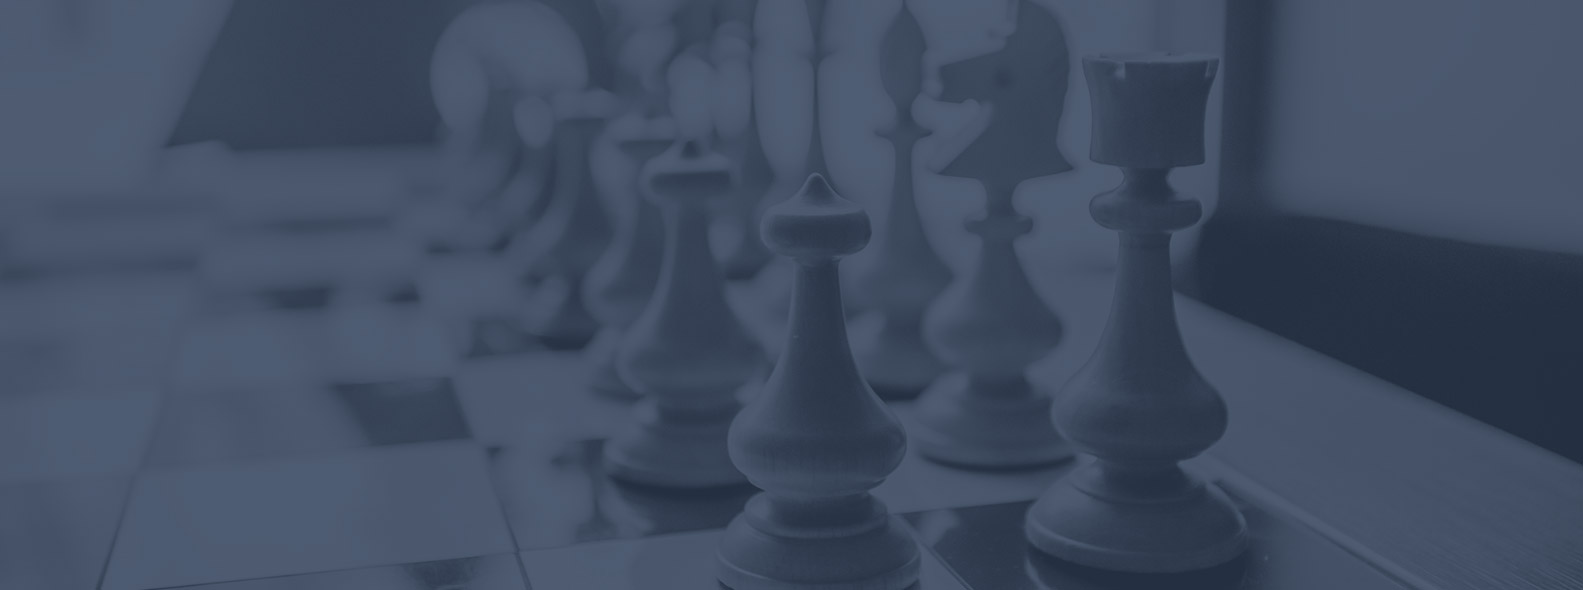 Chess pieces representing Diligentiam's Site map for easy navigation